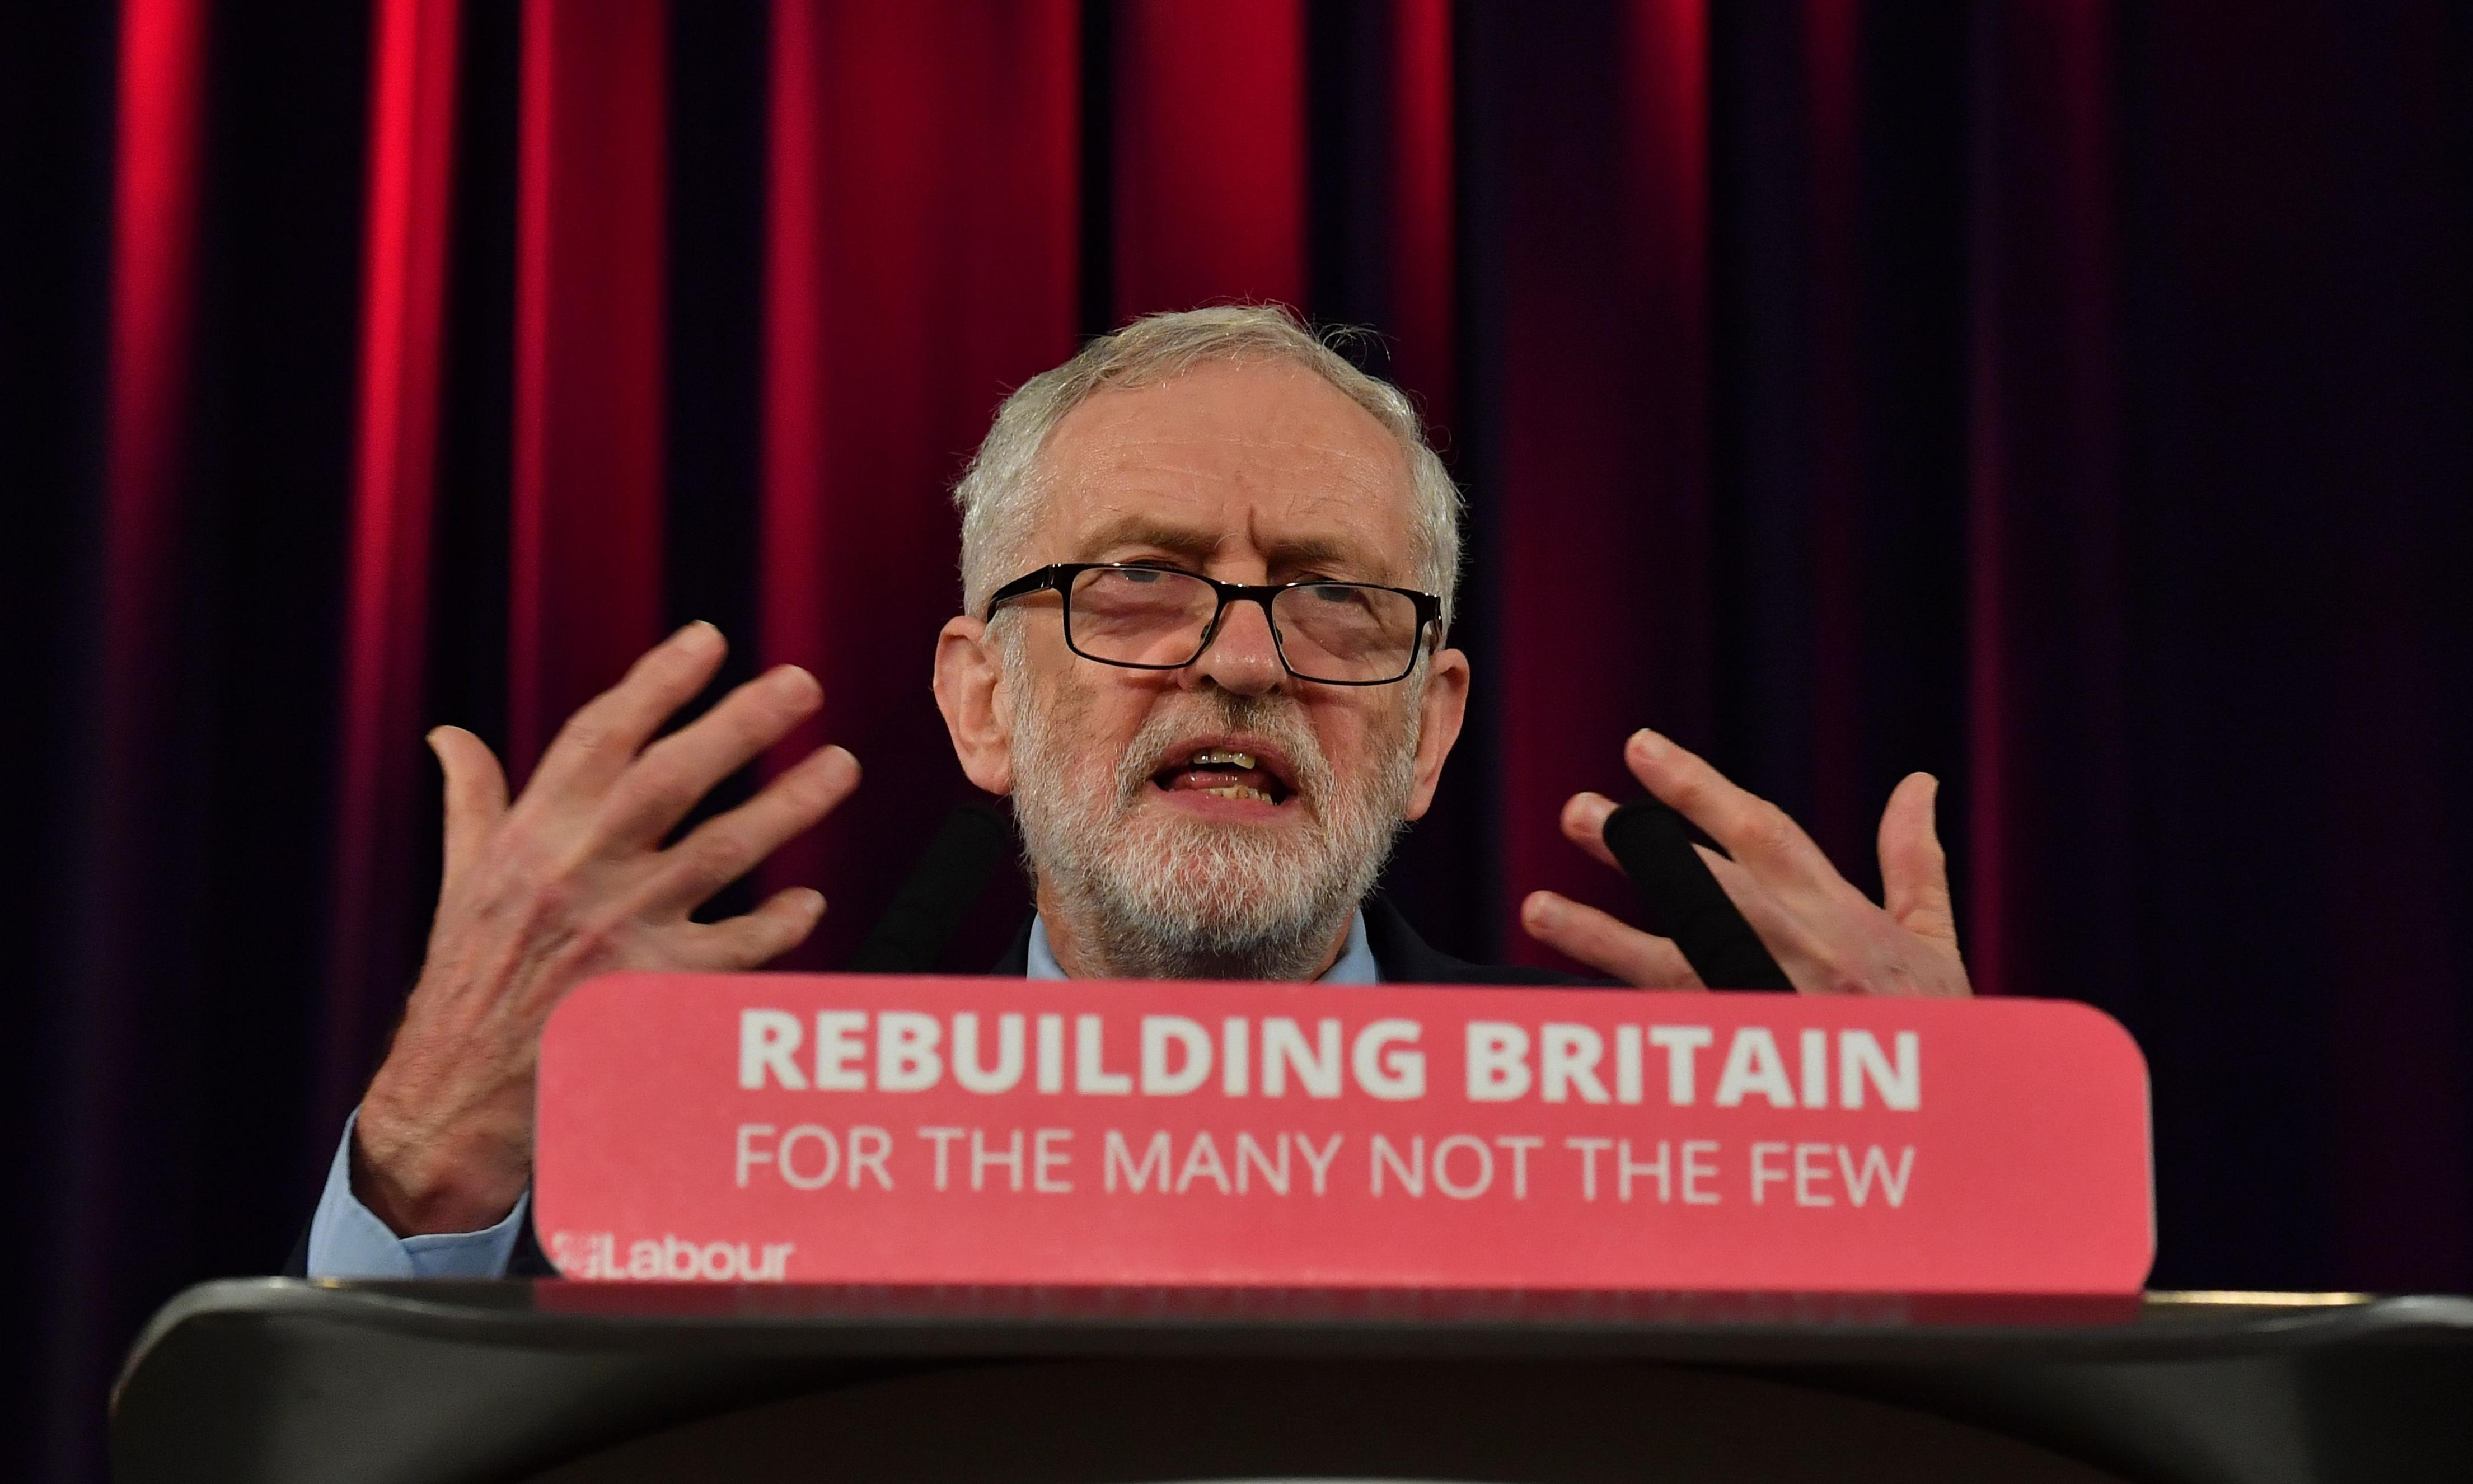 Jeremy Corbyn expected to back move to block no-deal Brexit